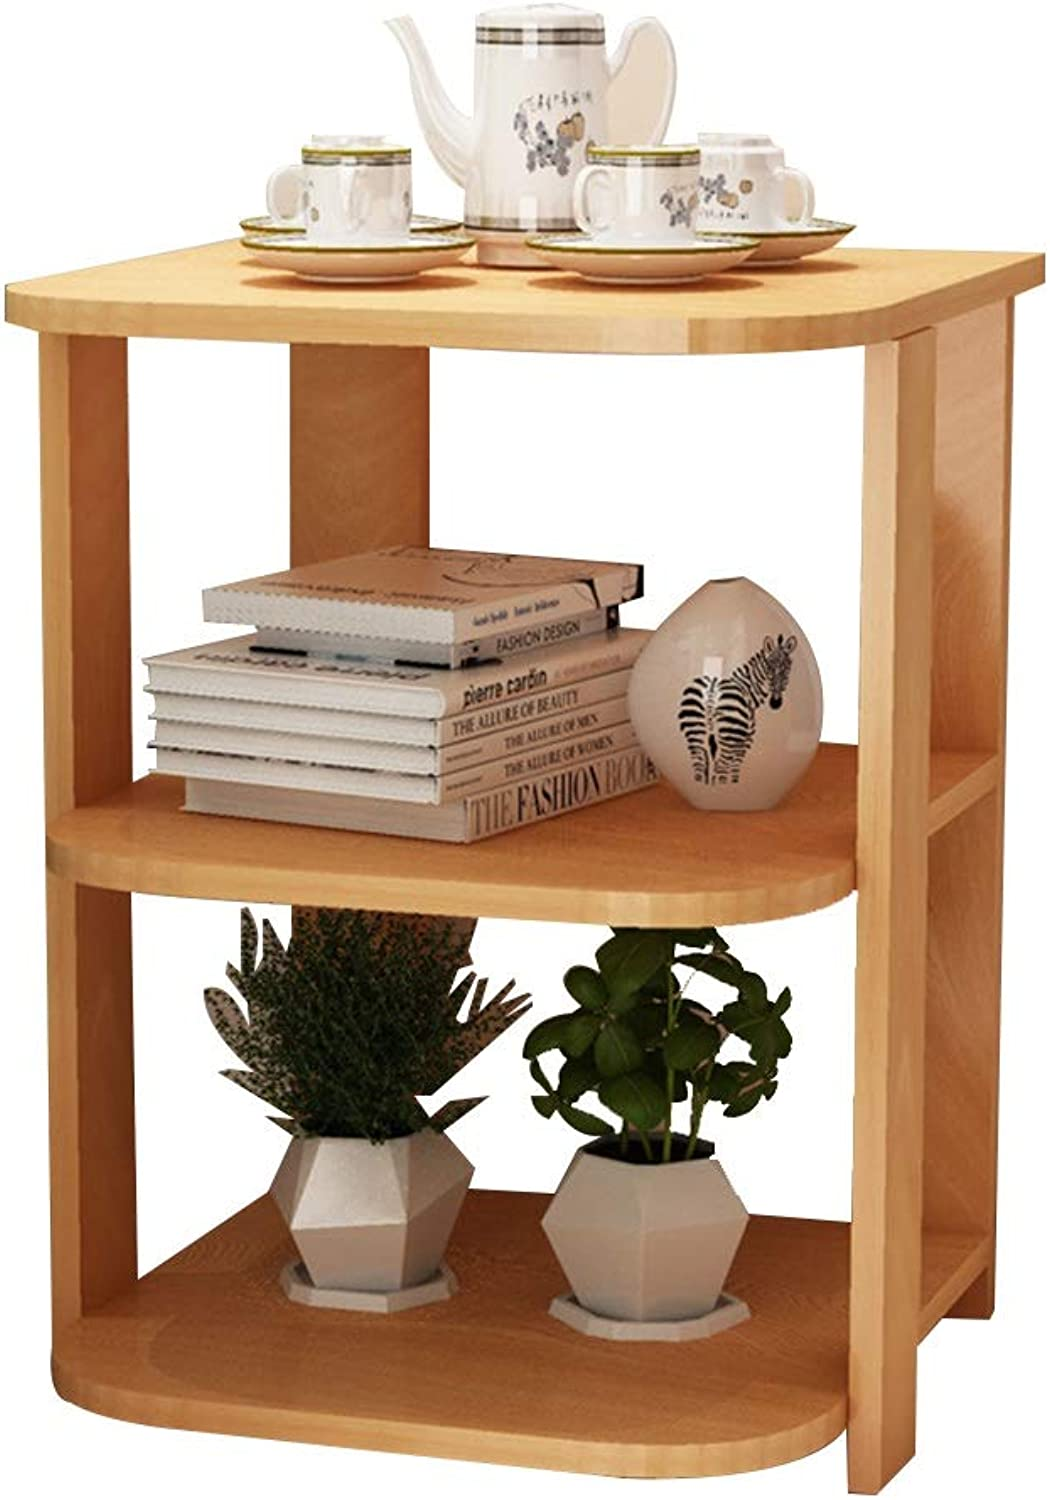 Coffee Table Side Table, Multi-Tier Storage Small Coffee Table Modern Simplicity Small Table in Living Room Mini Sofa Side Cabinet Bedroom Bedside Table (color   Wood color)